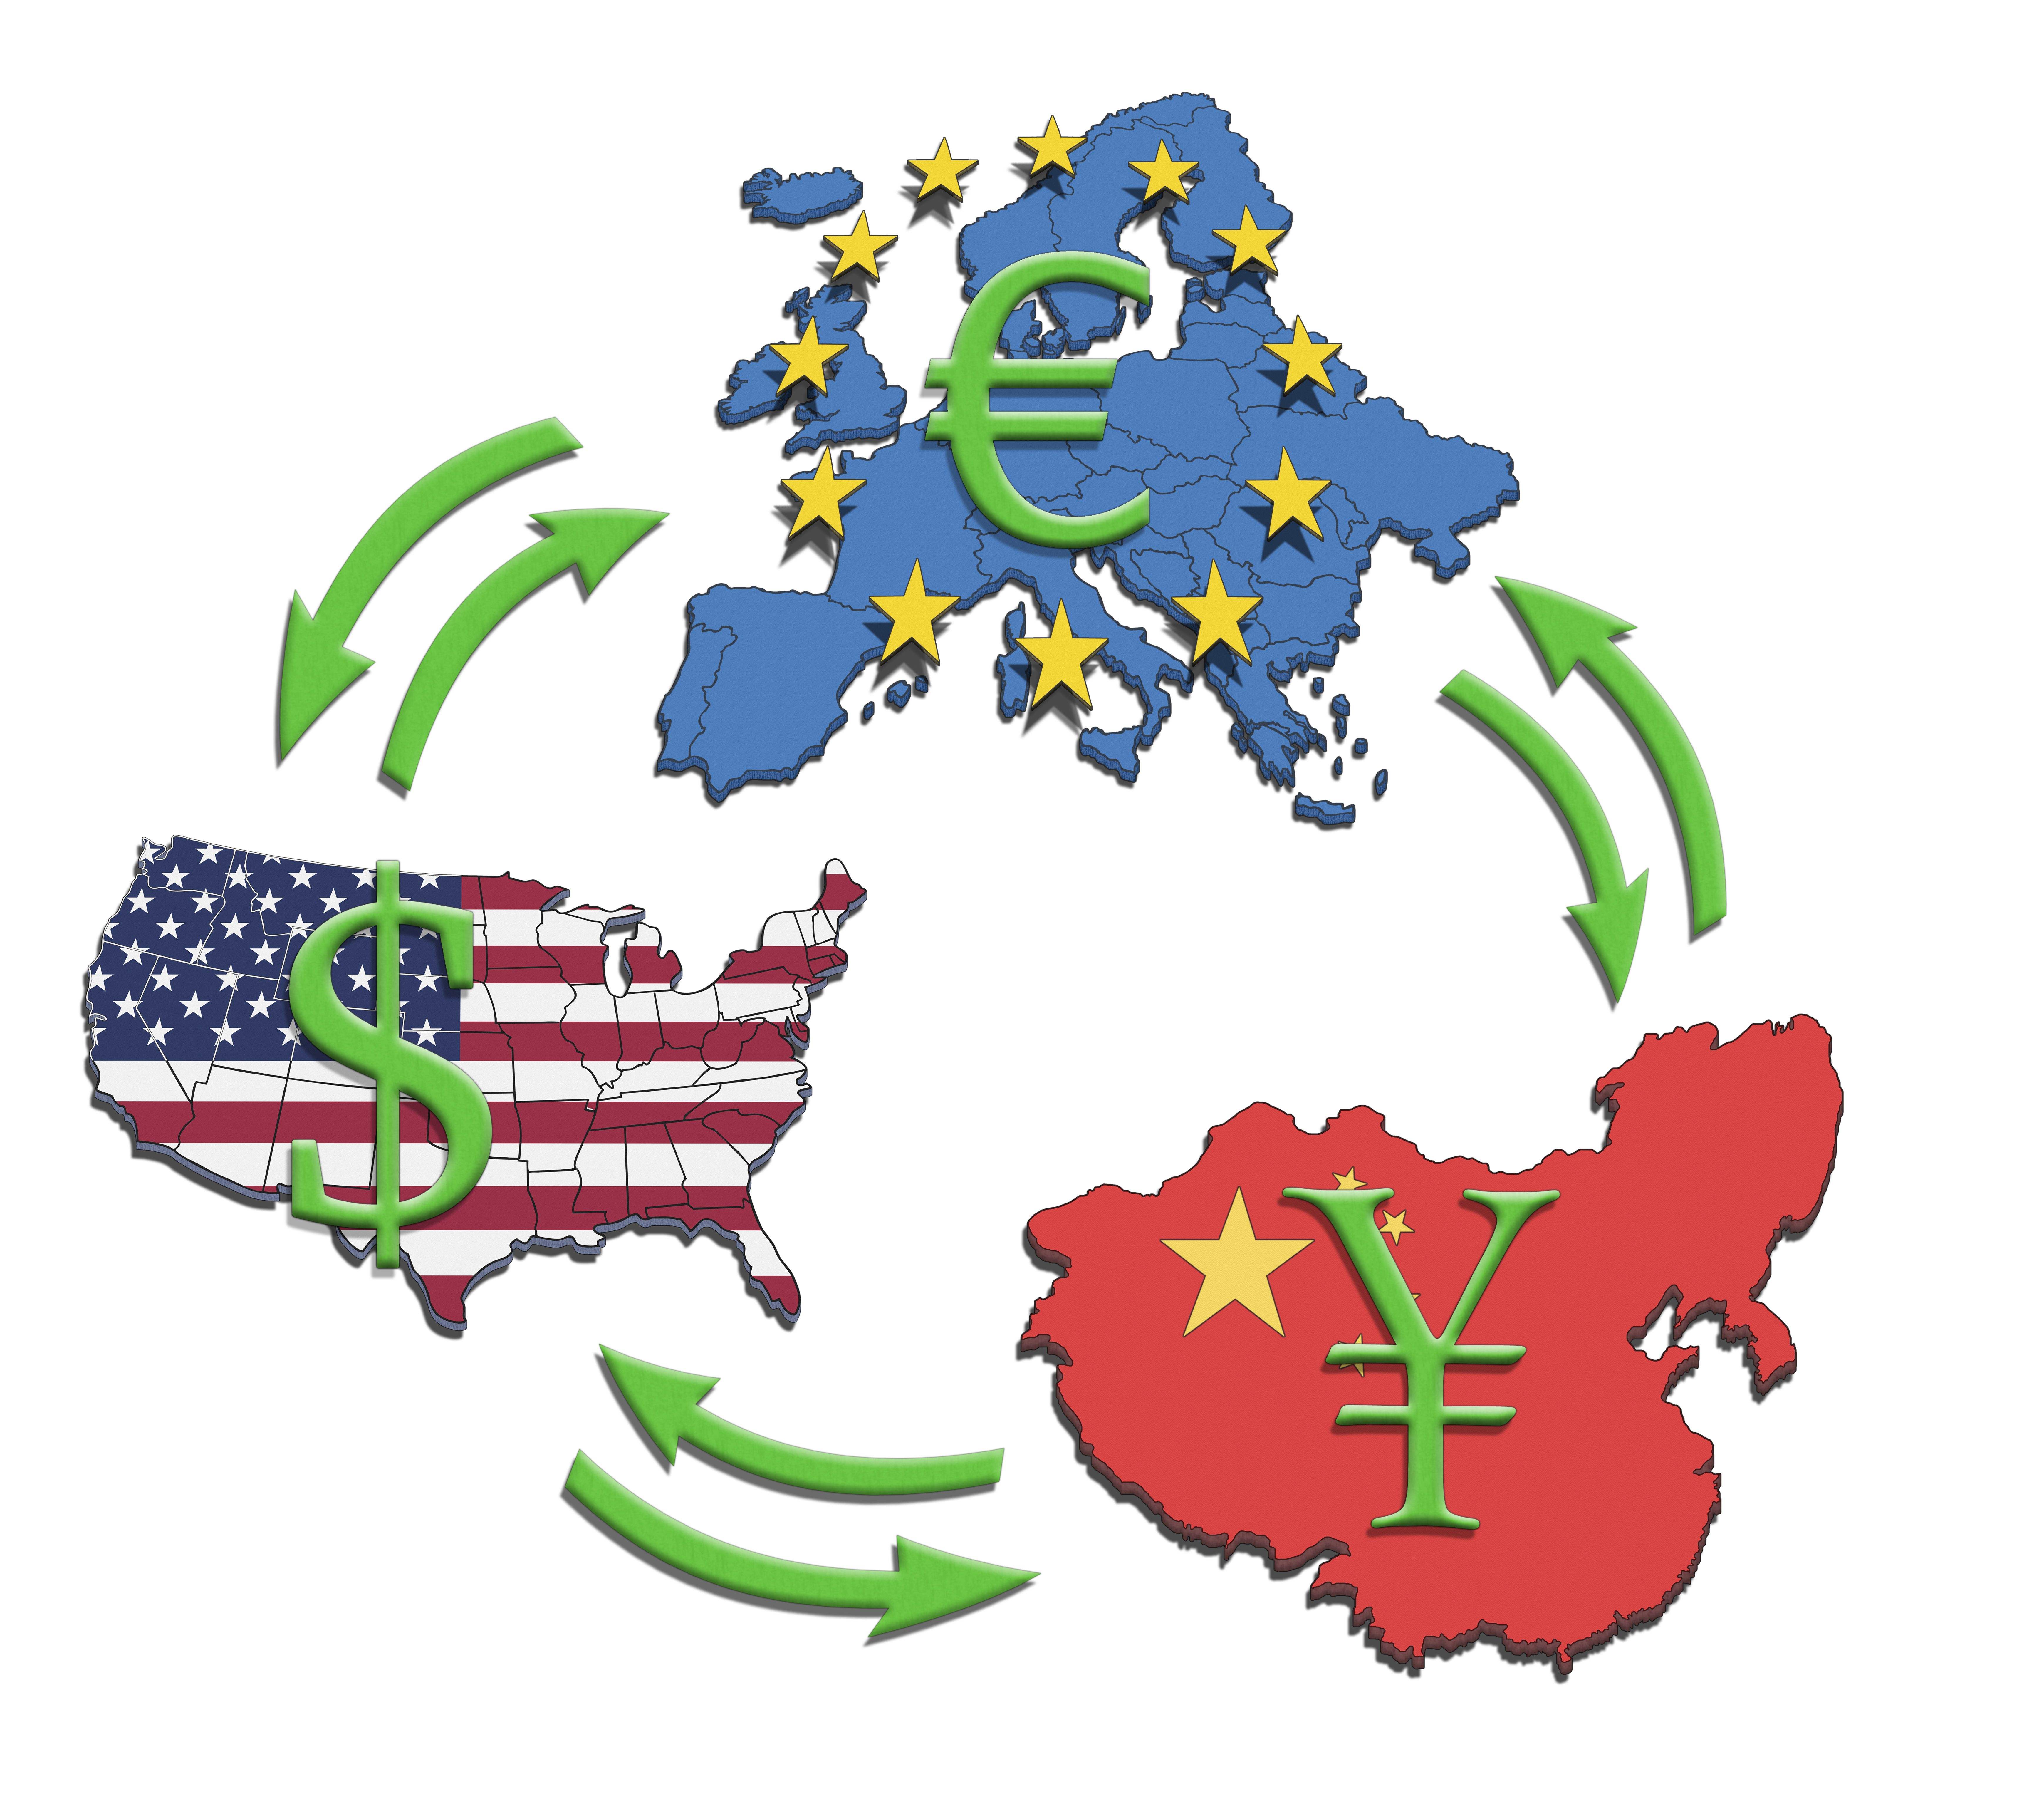 Economics clipart global economy. England france and holland